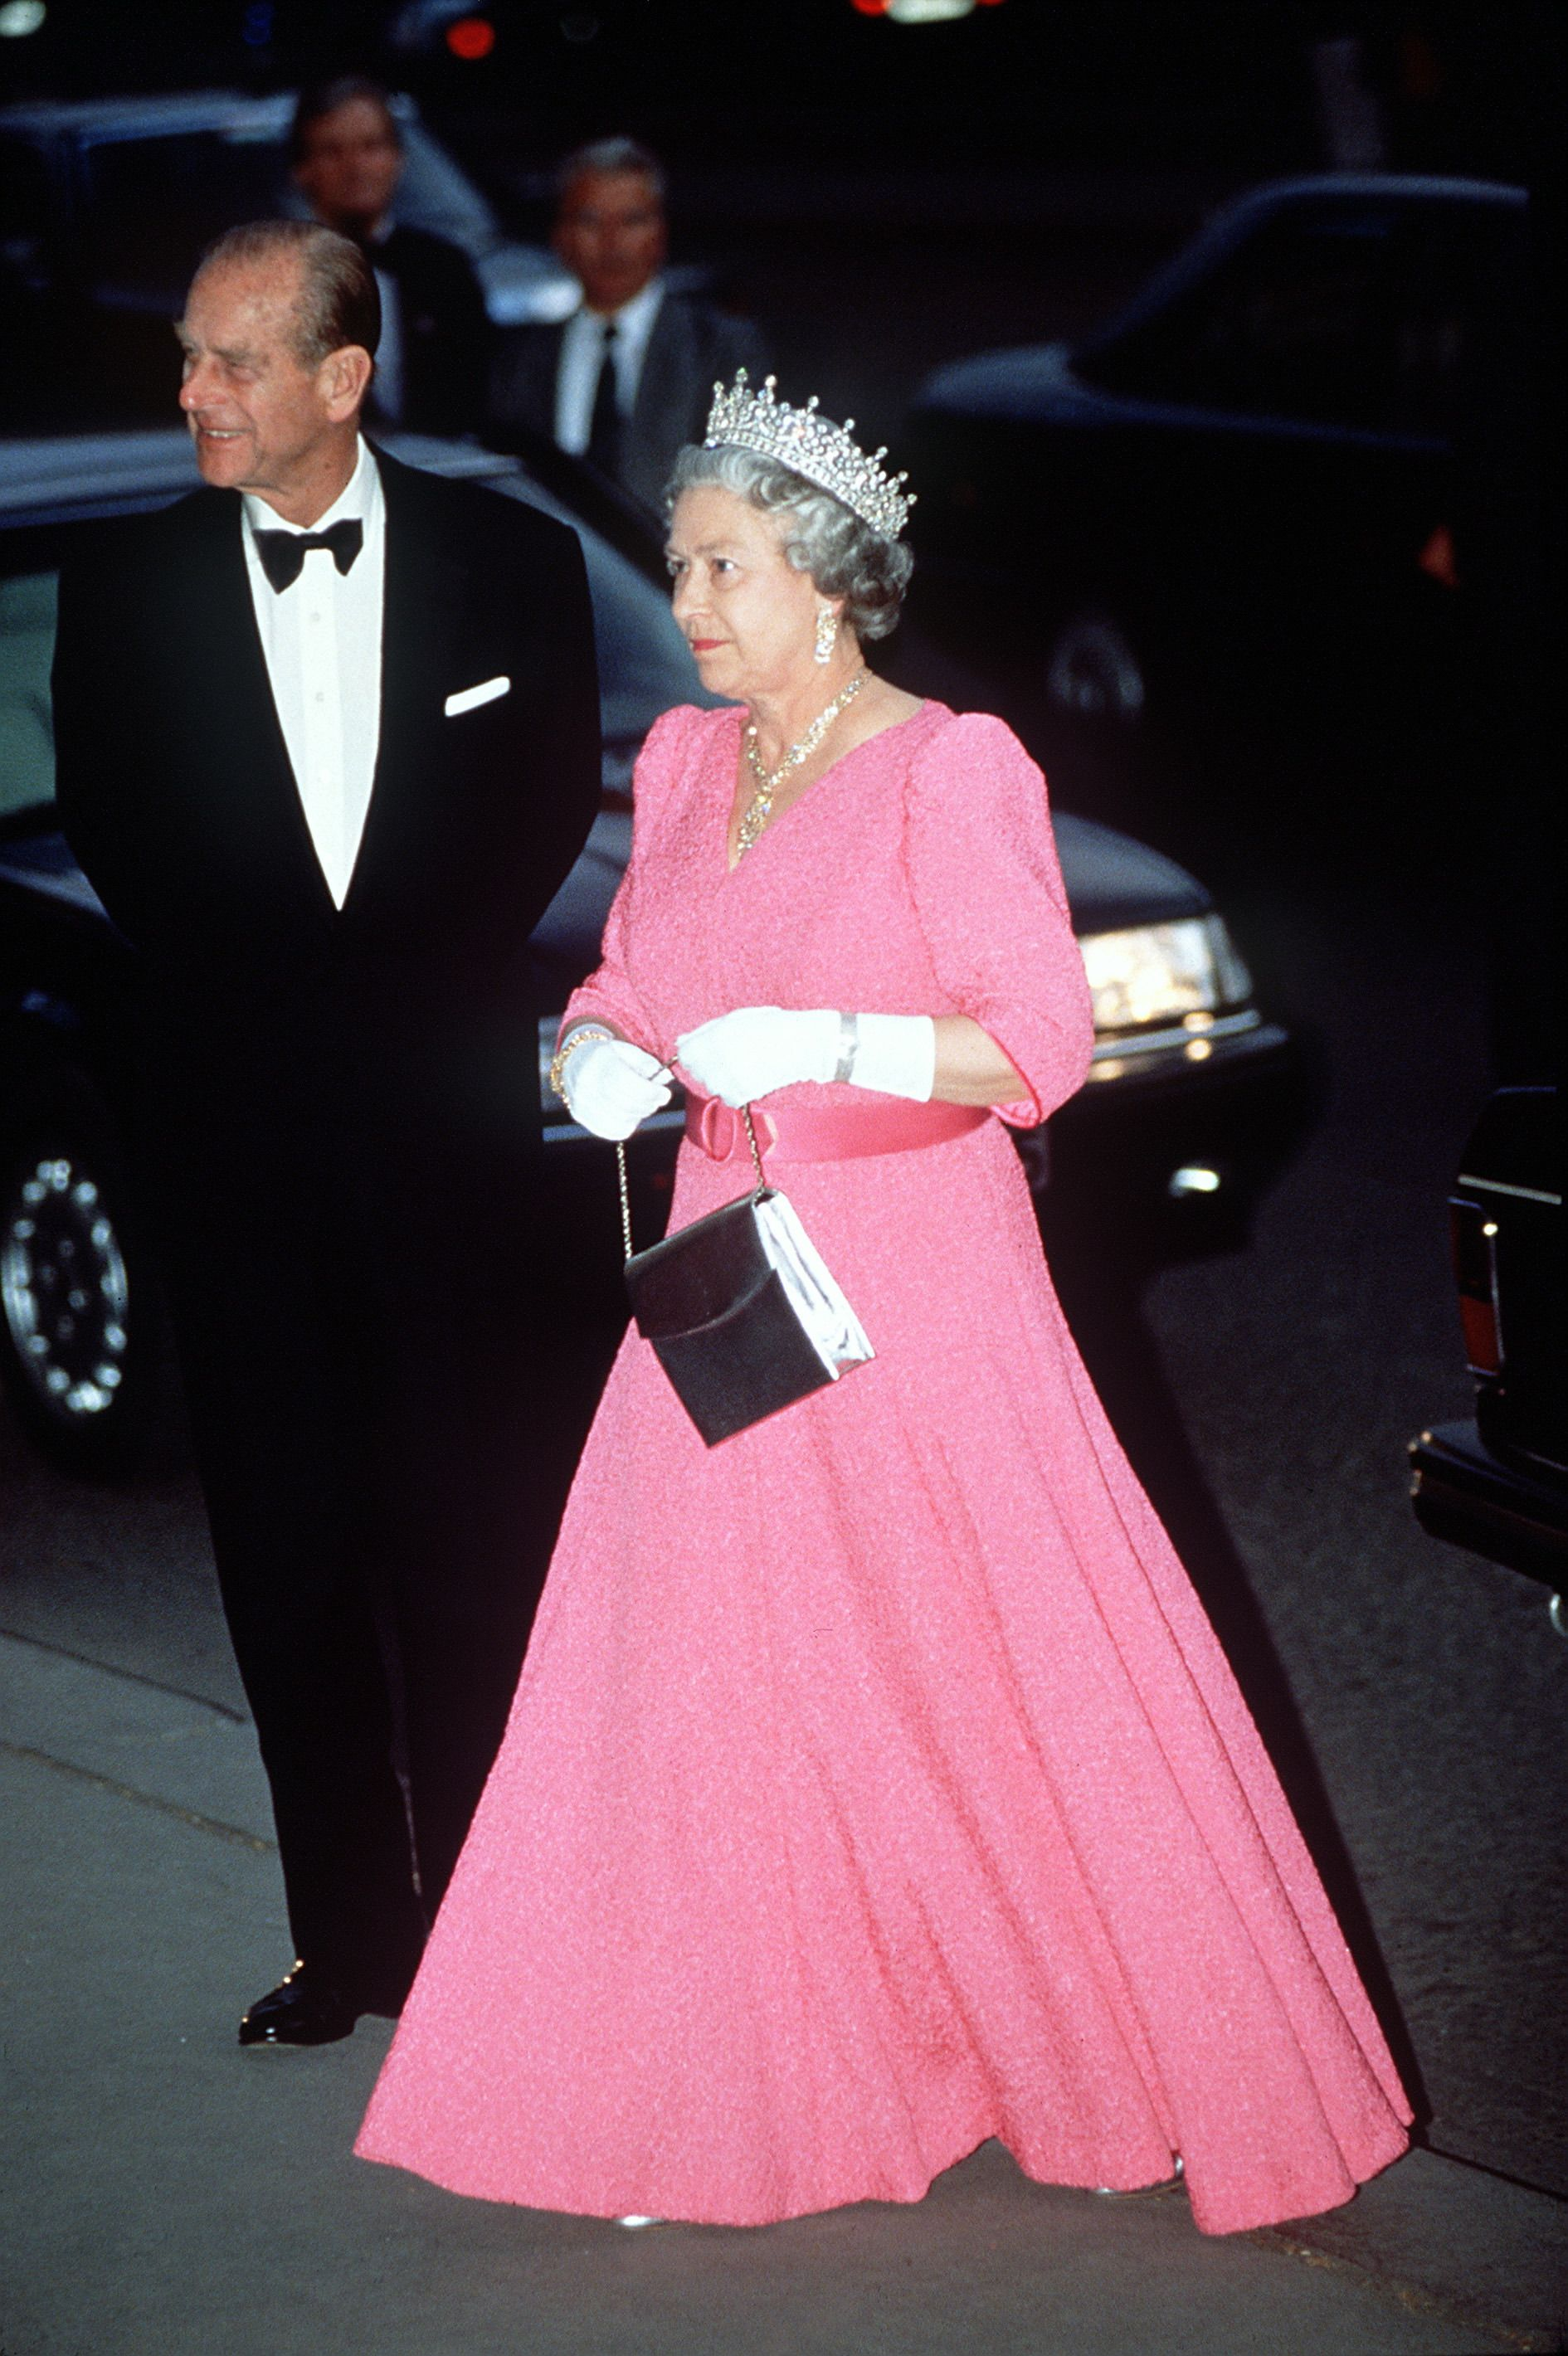 Queen Elizabeth\'s Best Fashion Looks - The Queen\'s Classic Outfits